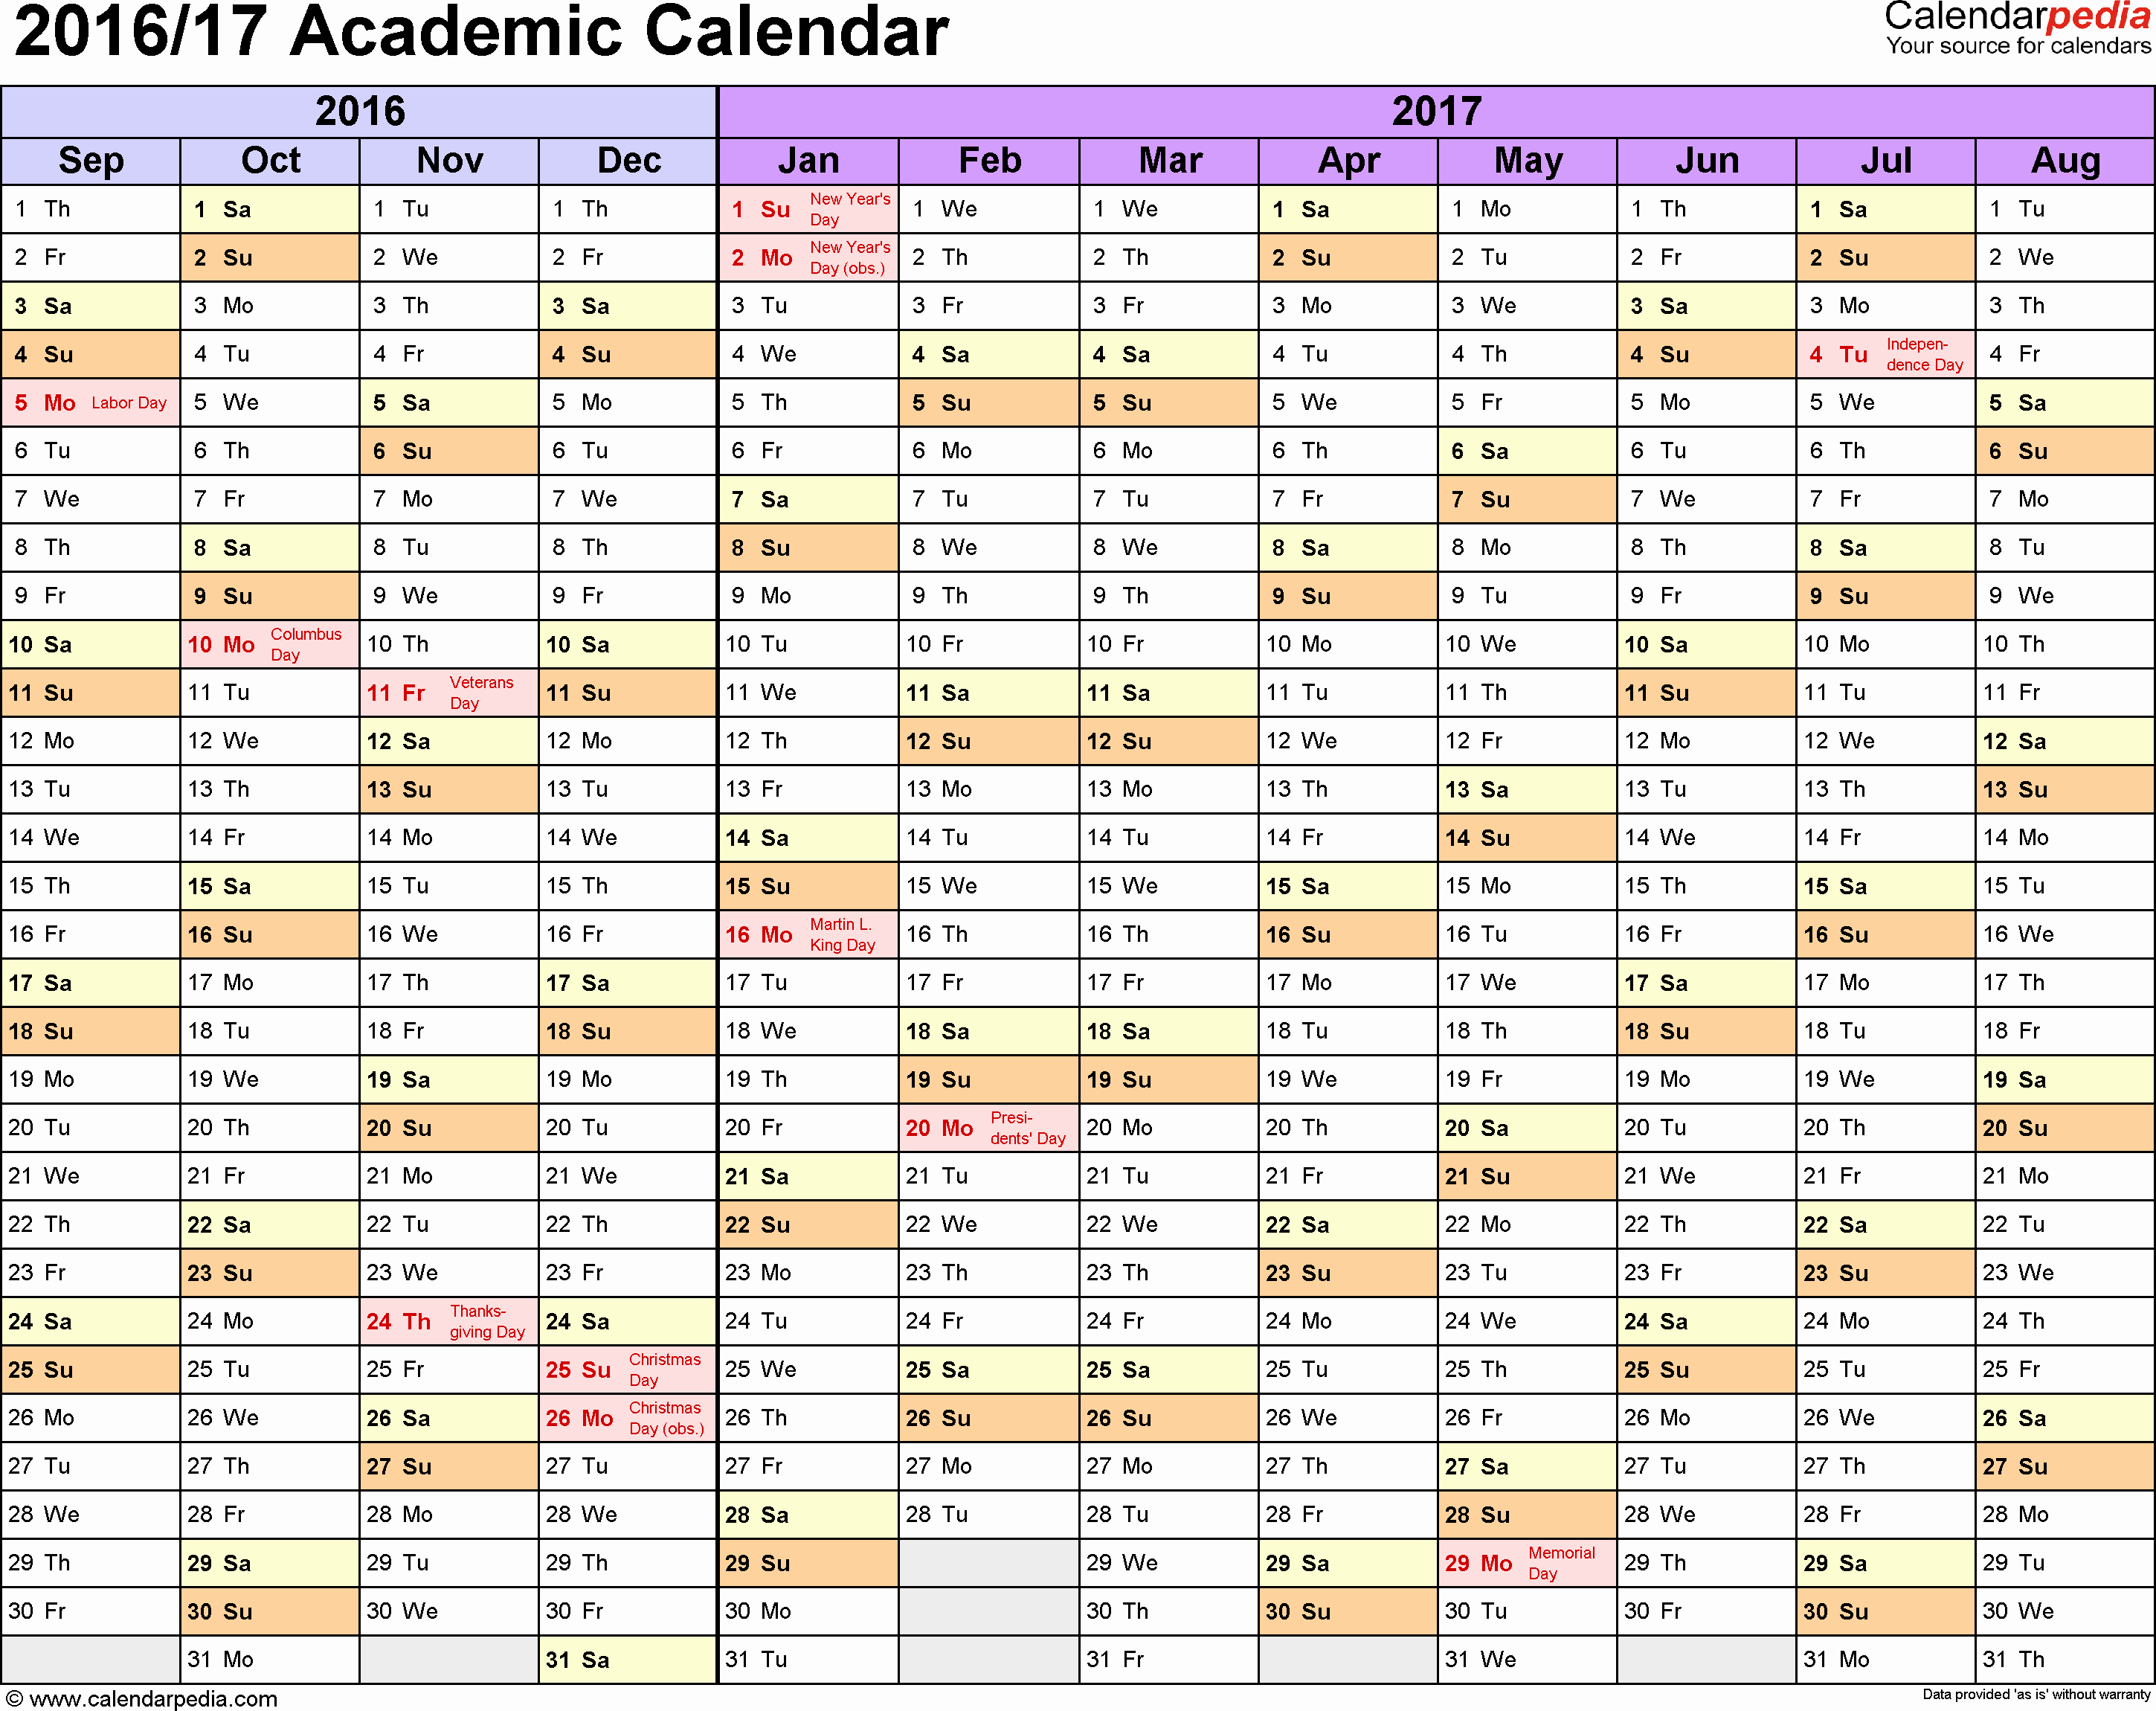 Calendar 2016-17 Template Beautiful Academic Calendars 2016 2017 Free Printable Excel Templates